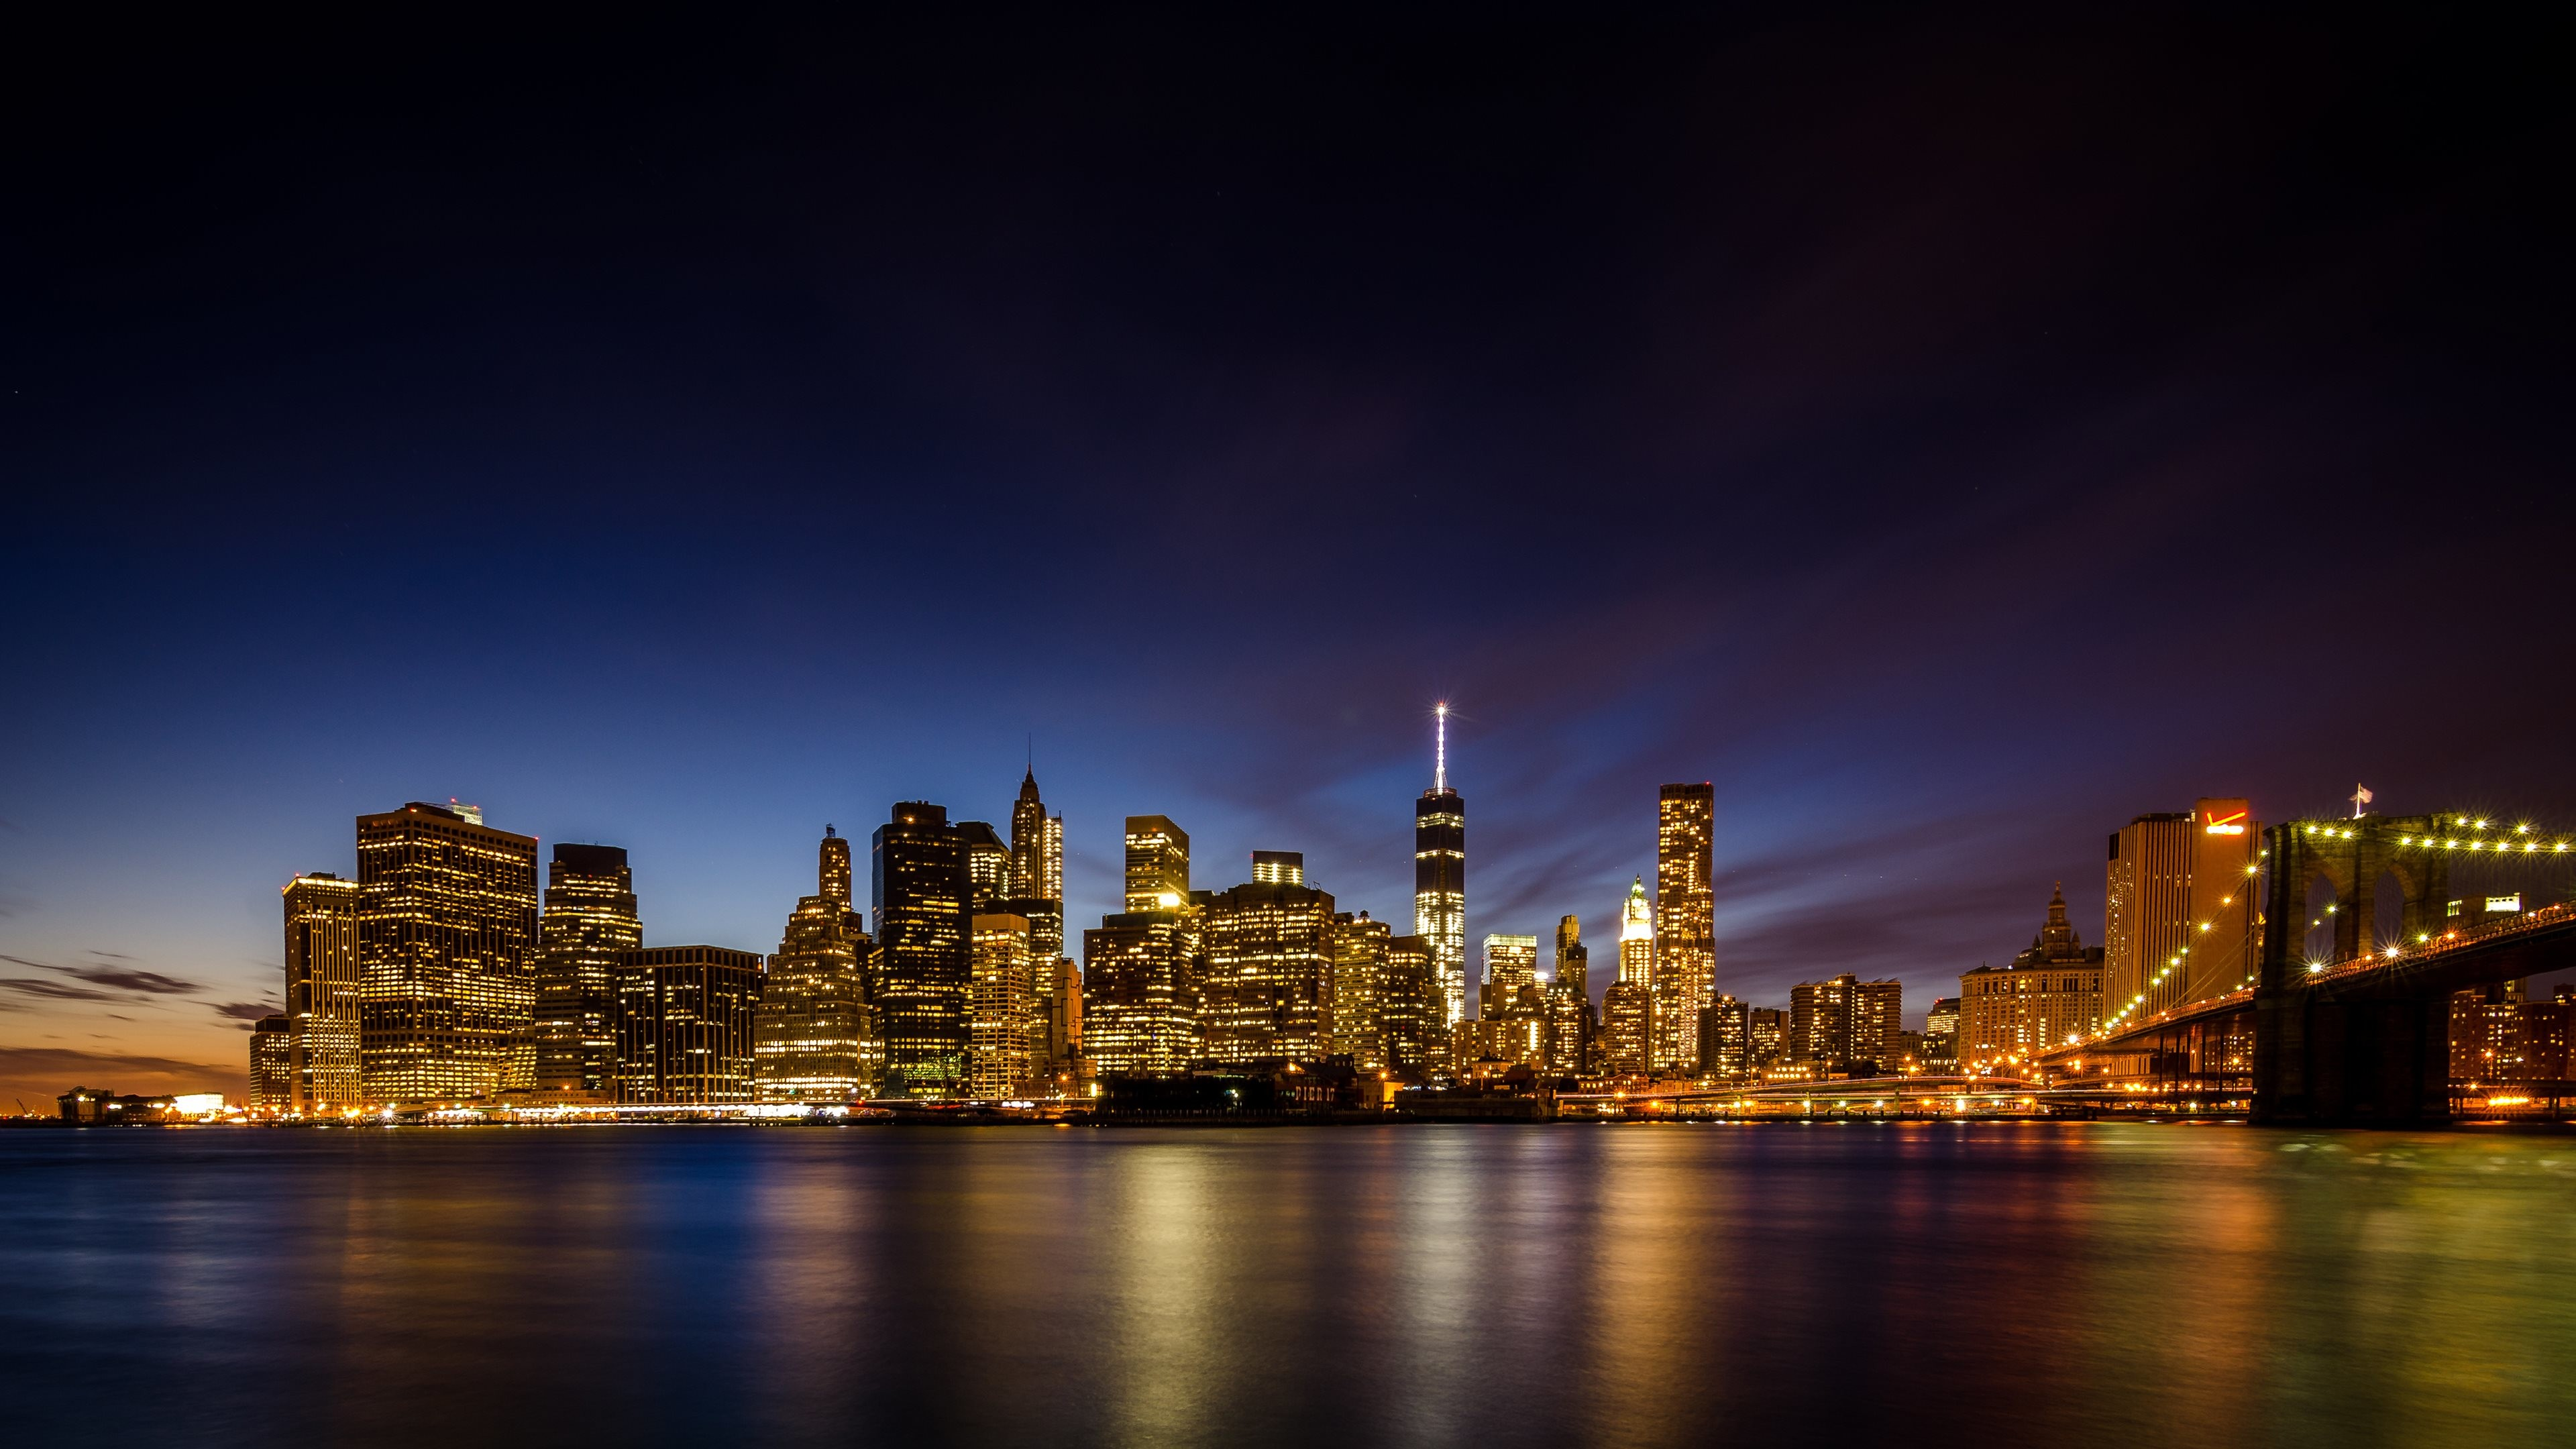 4K HD Wallpaper: New York City skyscrapers by night